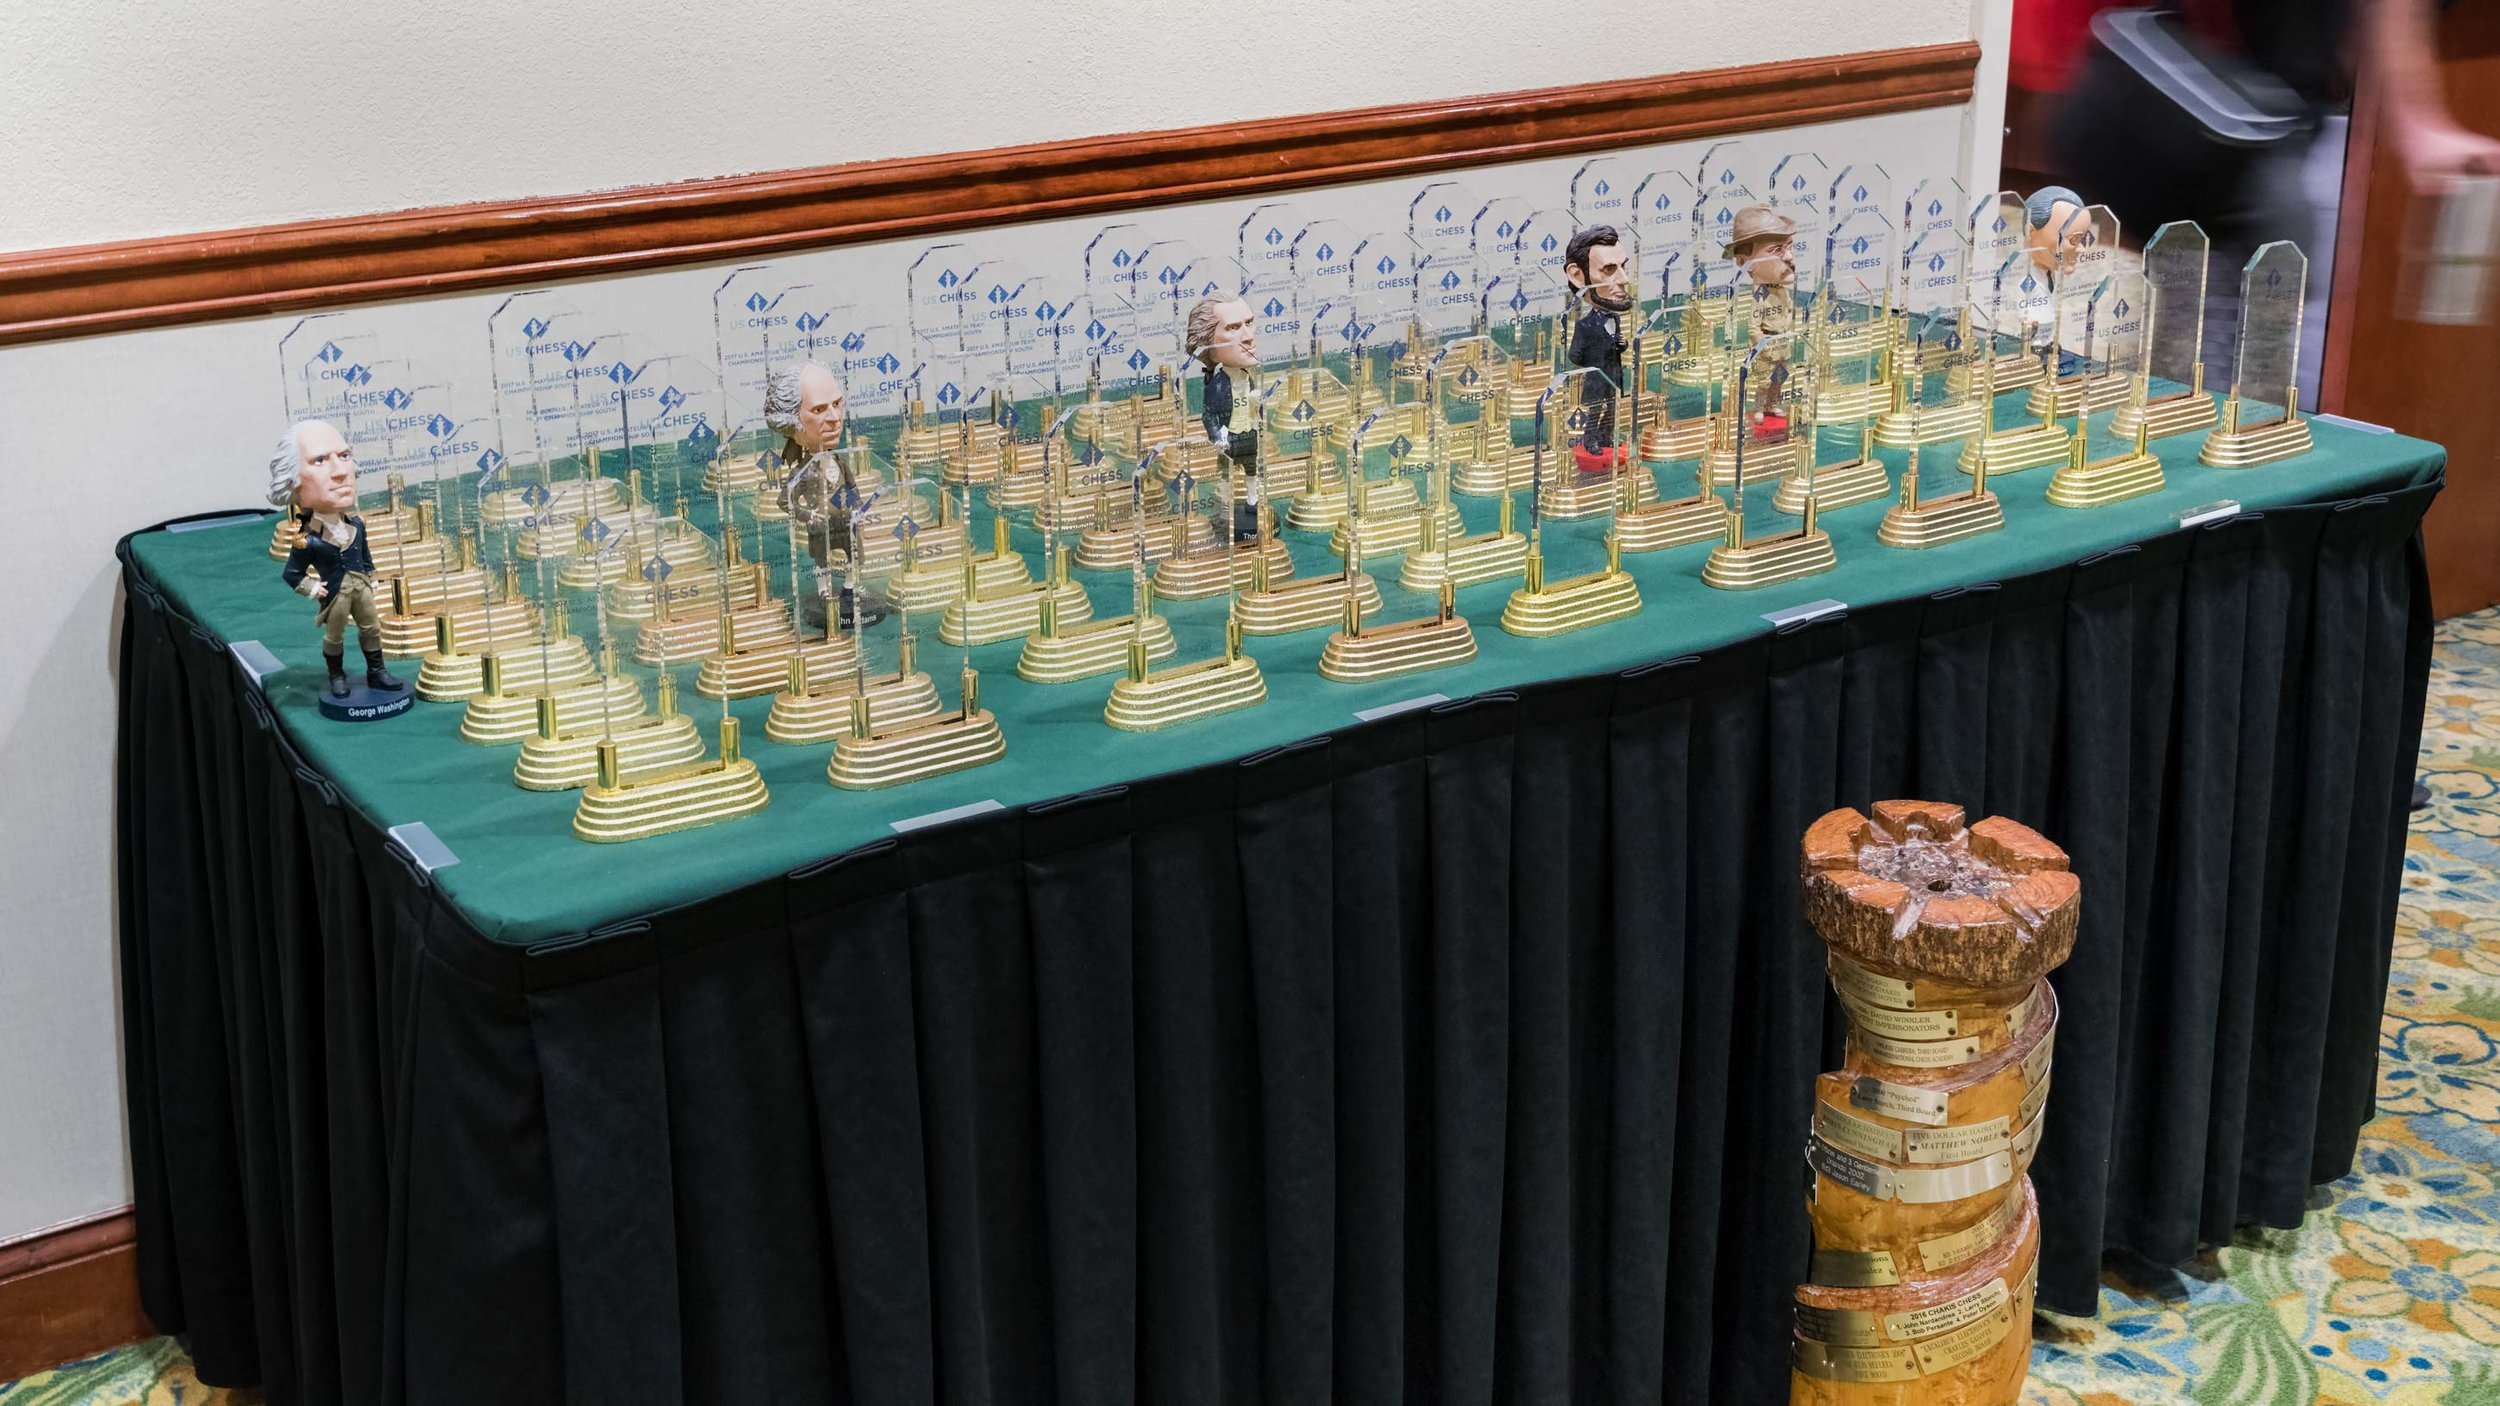 2017 US Amateur Team South Awards Table along with the wooden Rolling Rook Team Trophy. The presidential figurines were added by event organizer/host in honor of the President's Day weekend tournament.